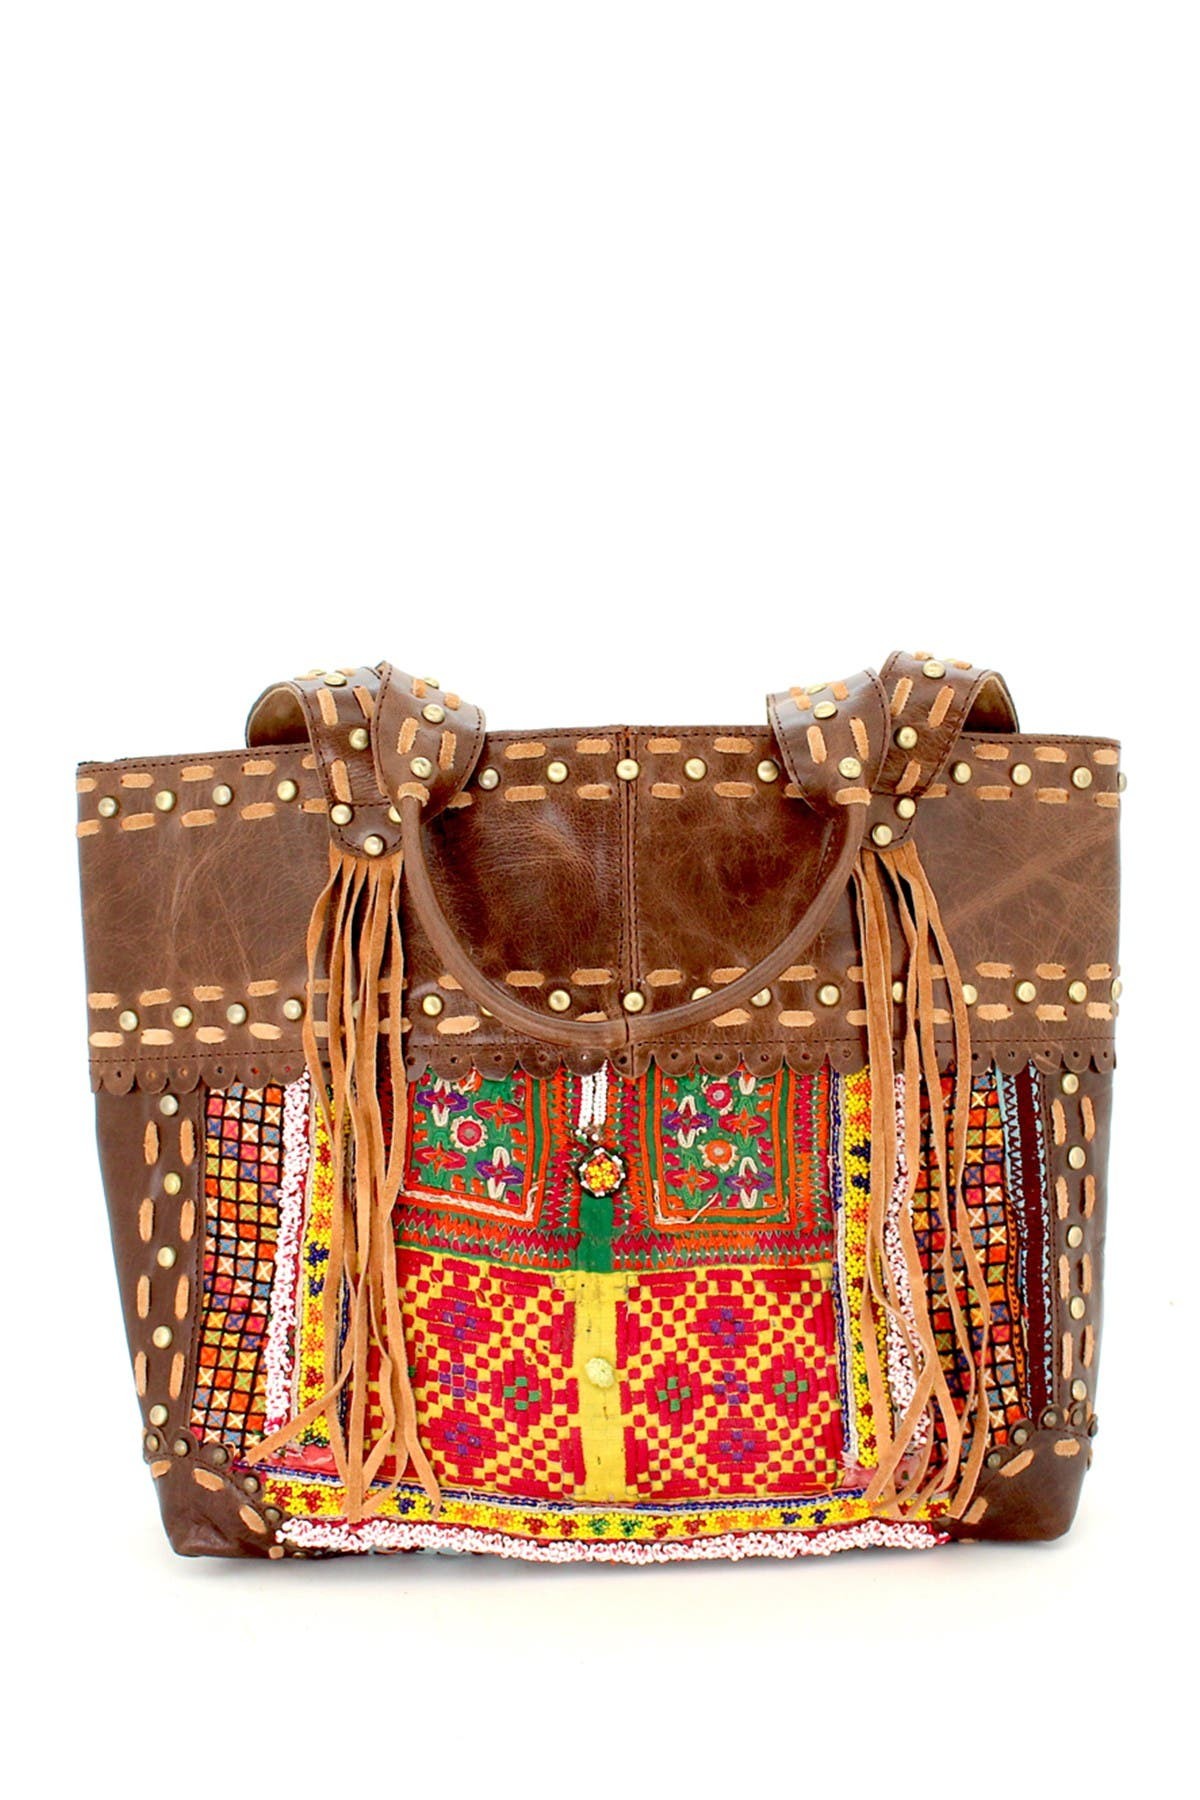 Image of Vintage Addiction Studded Accents Leather Tote